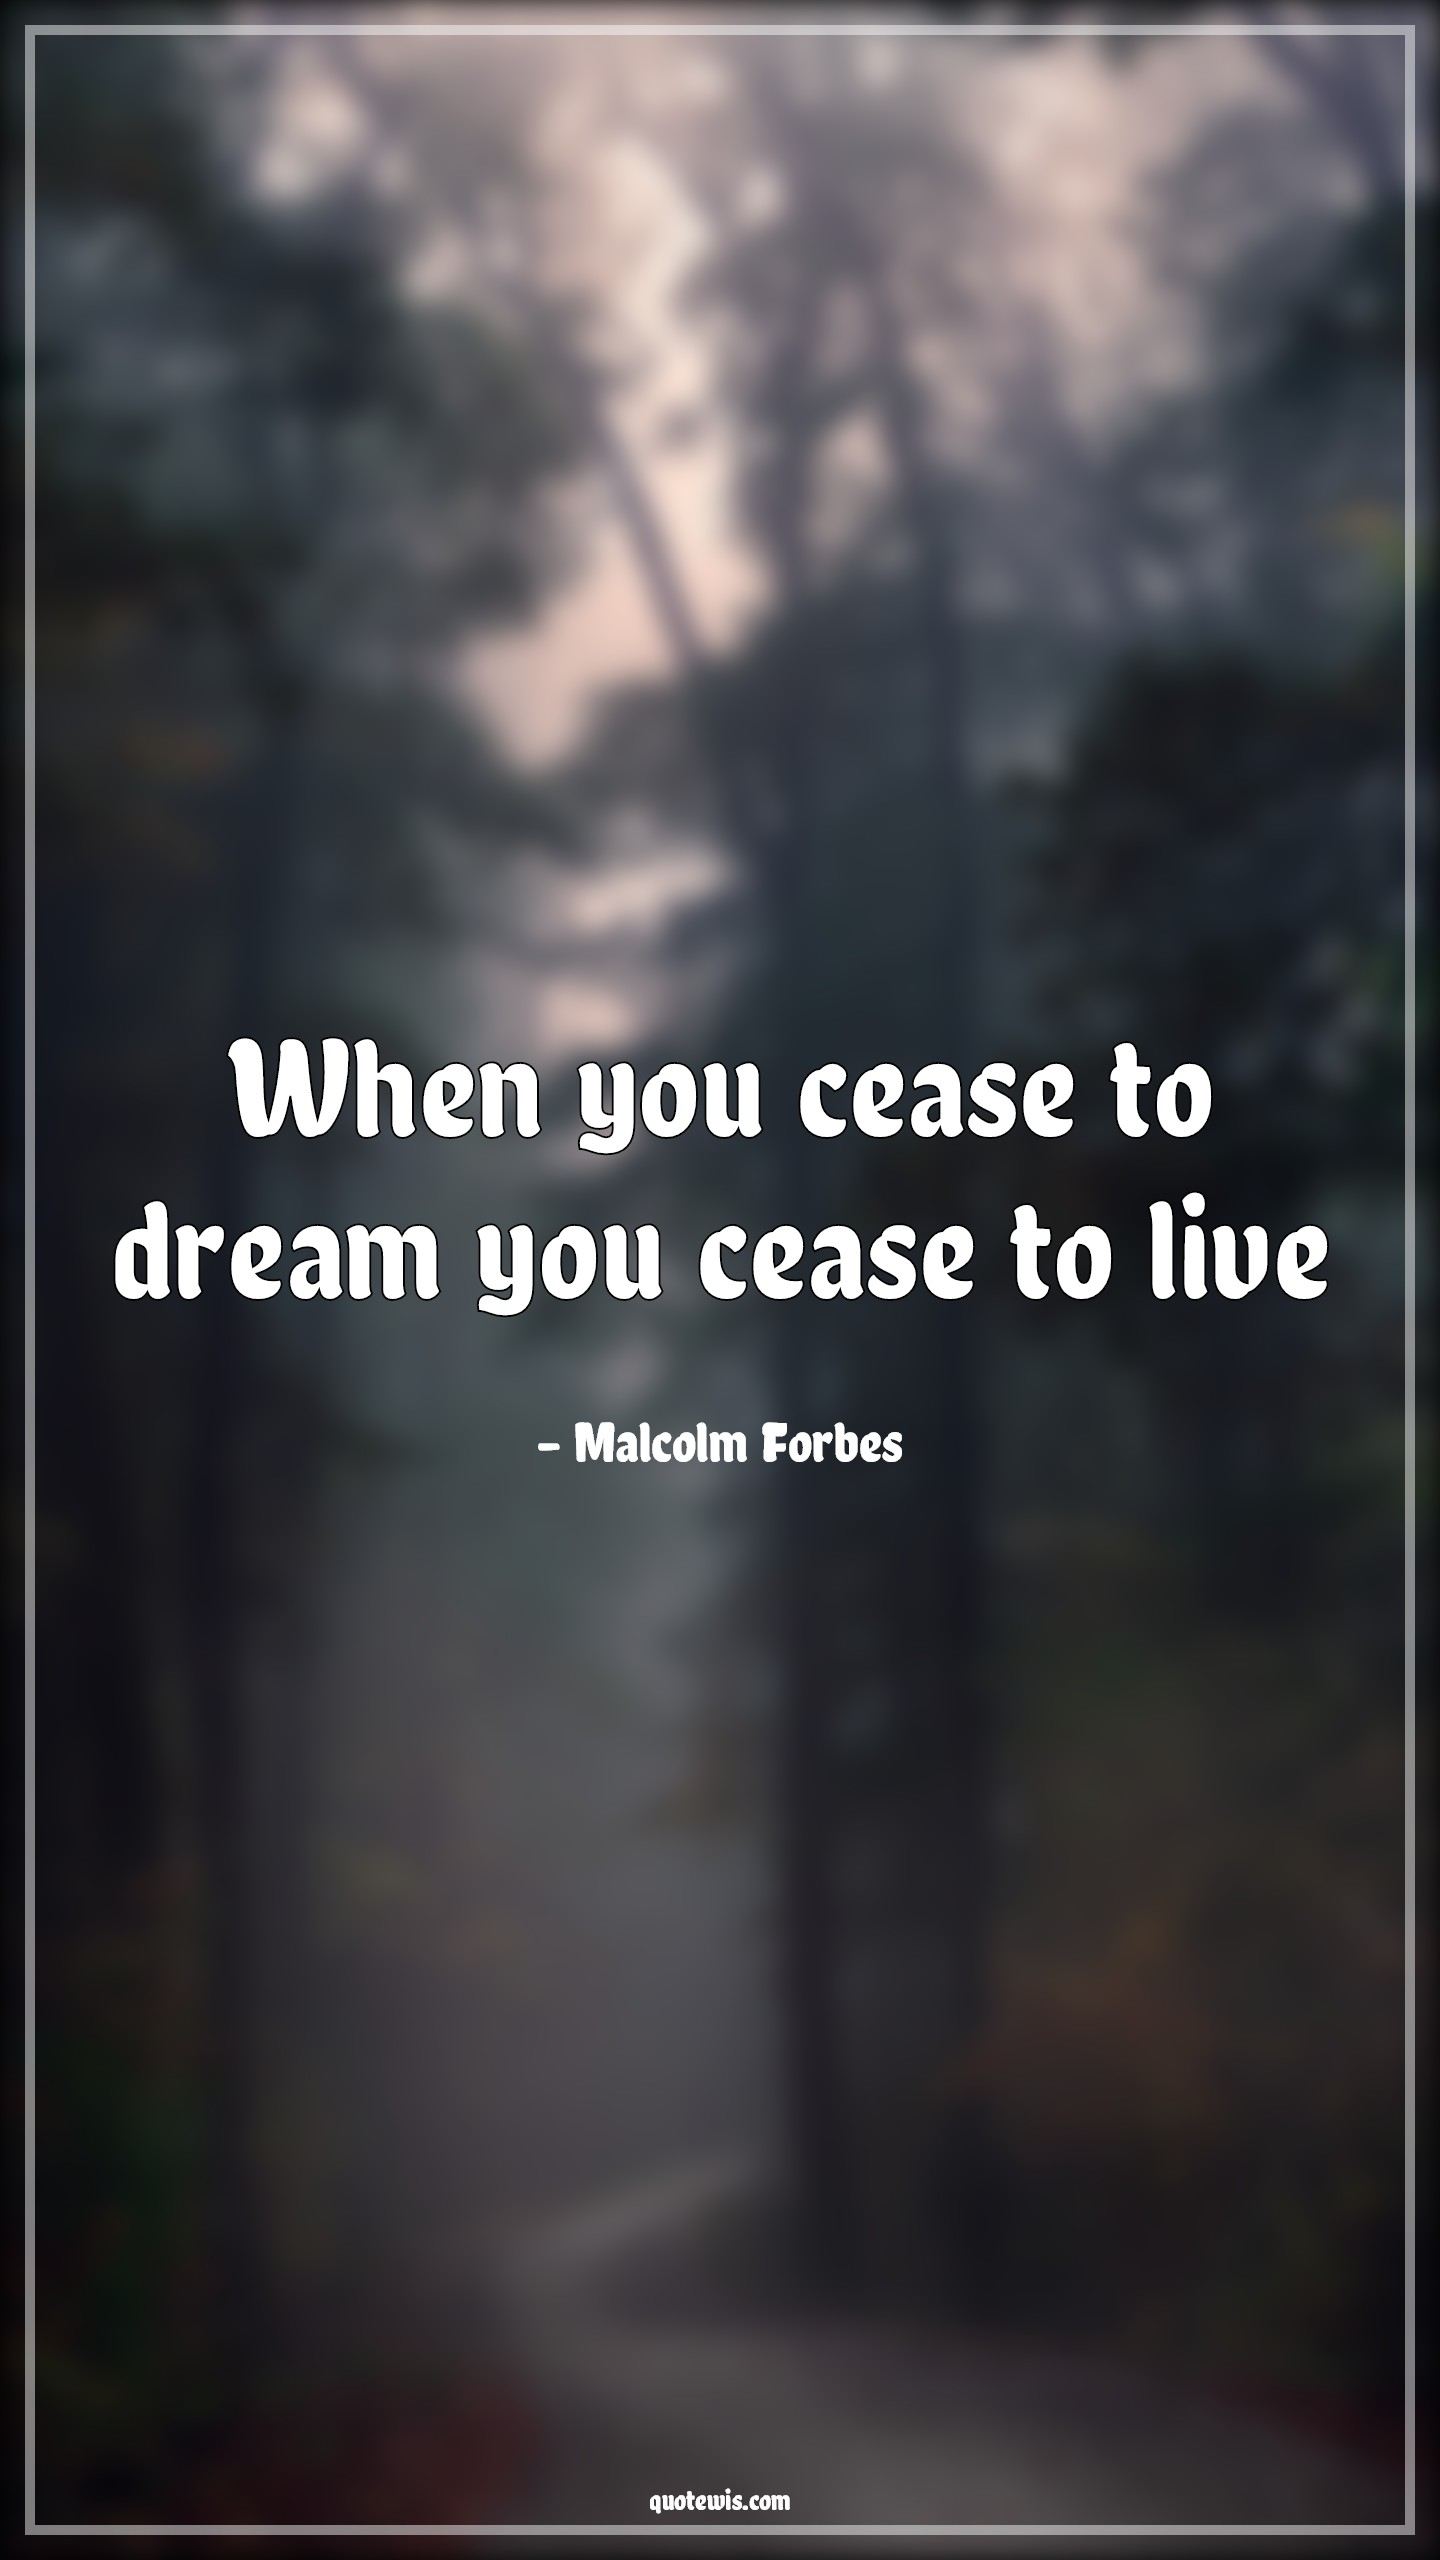 When you cease to dream you cease to live